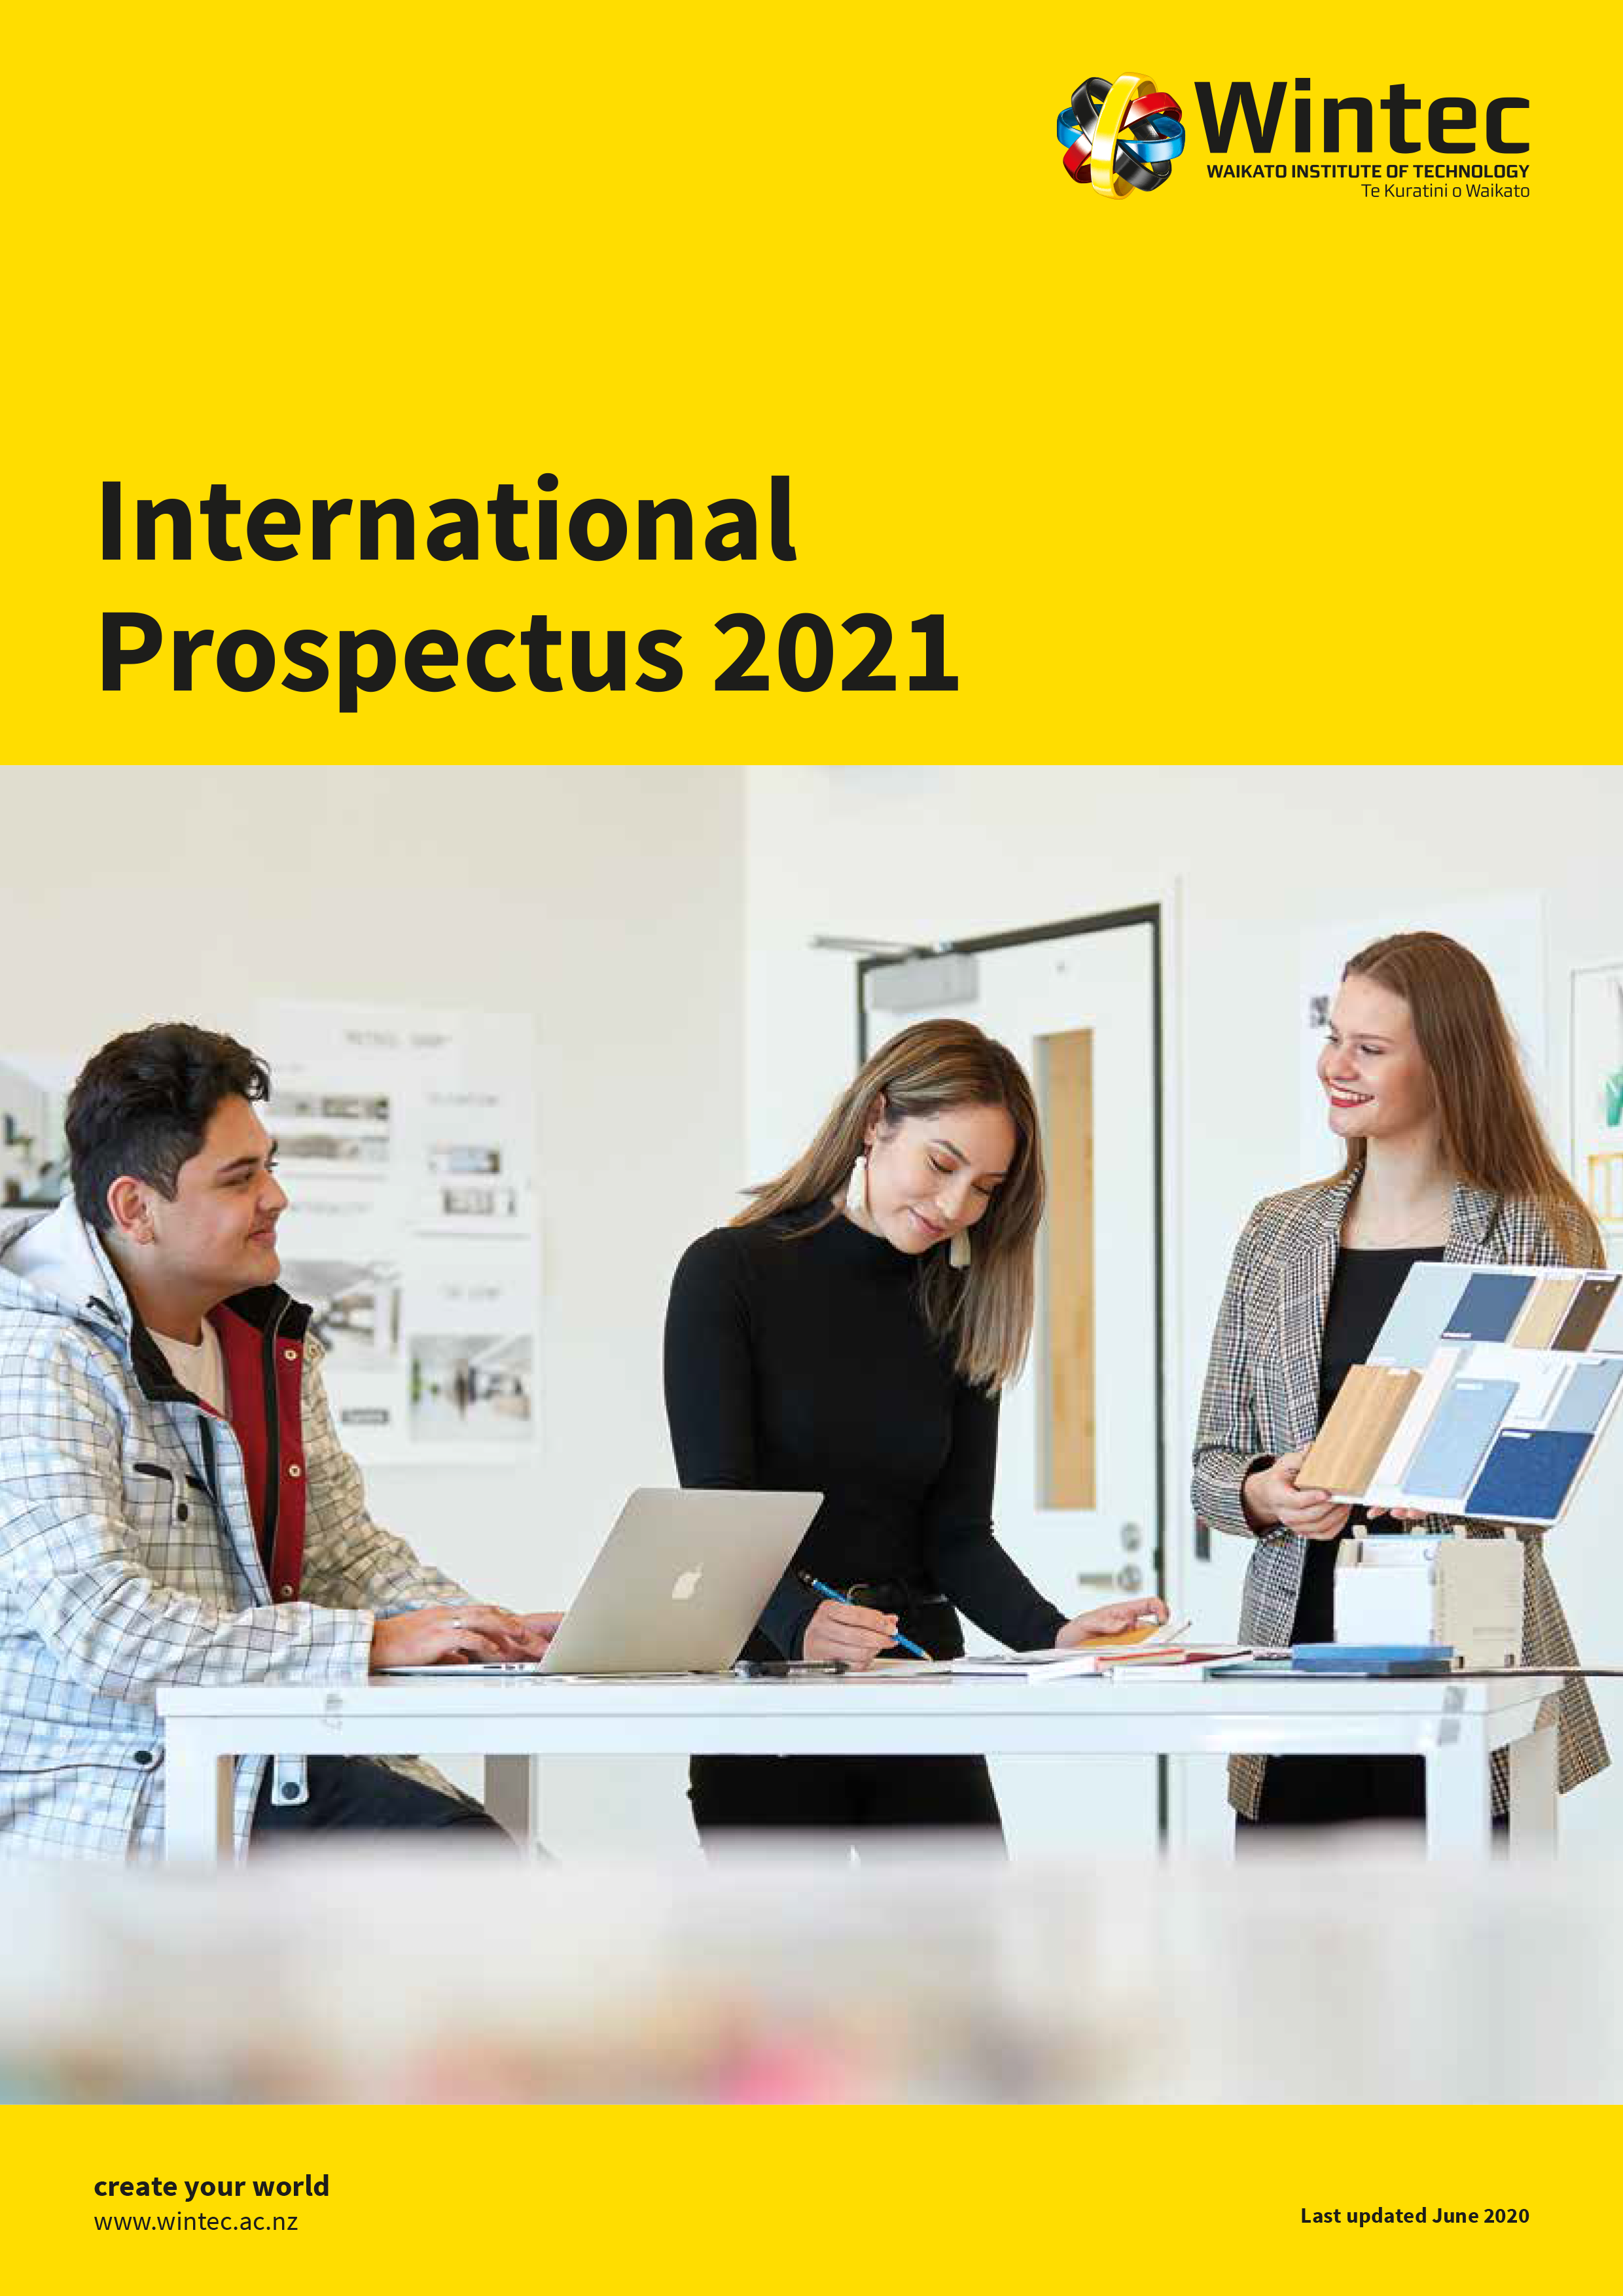 International Prospectus 2021